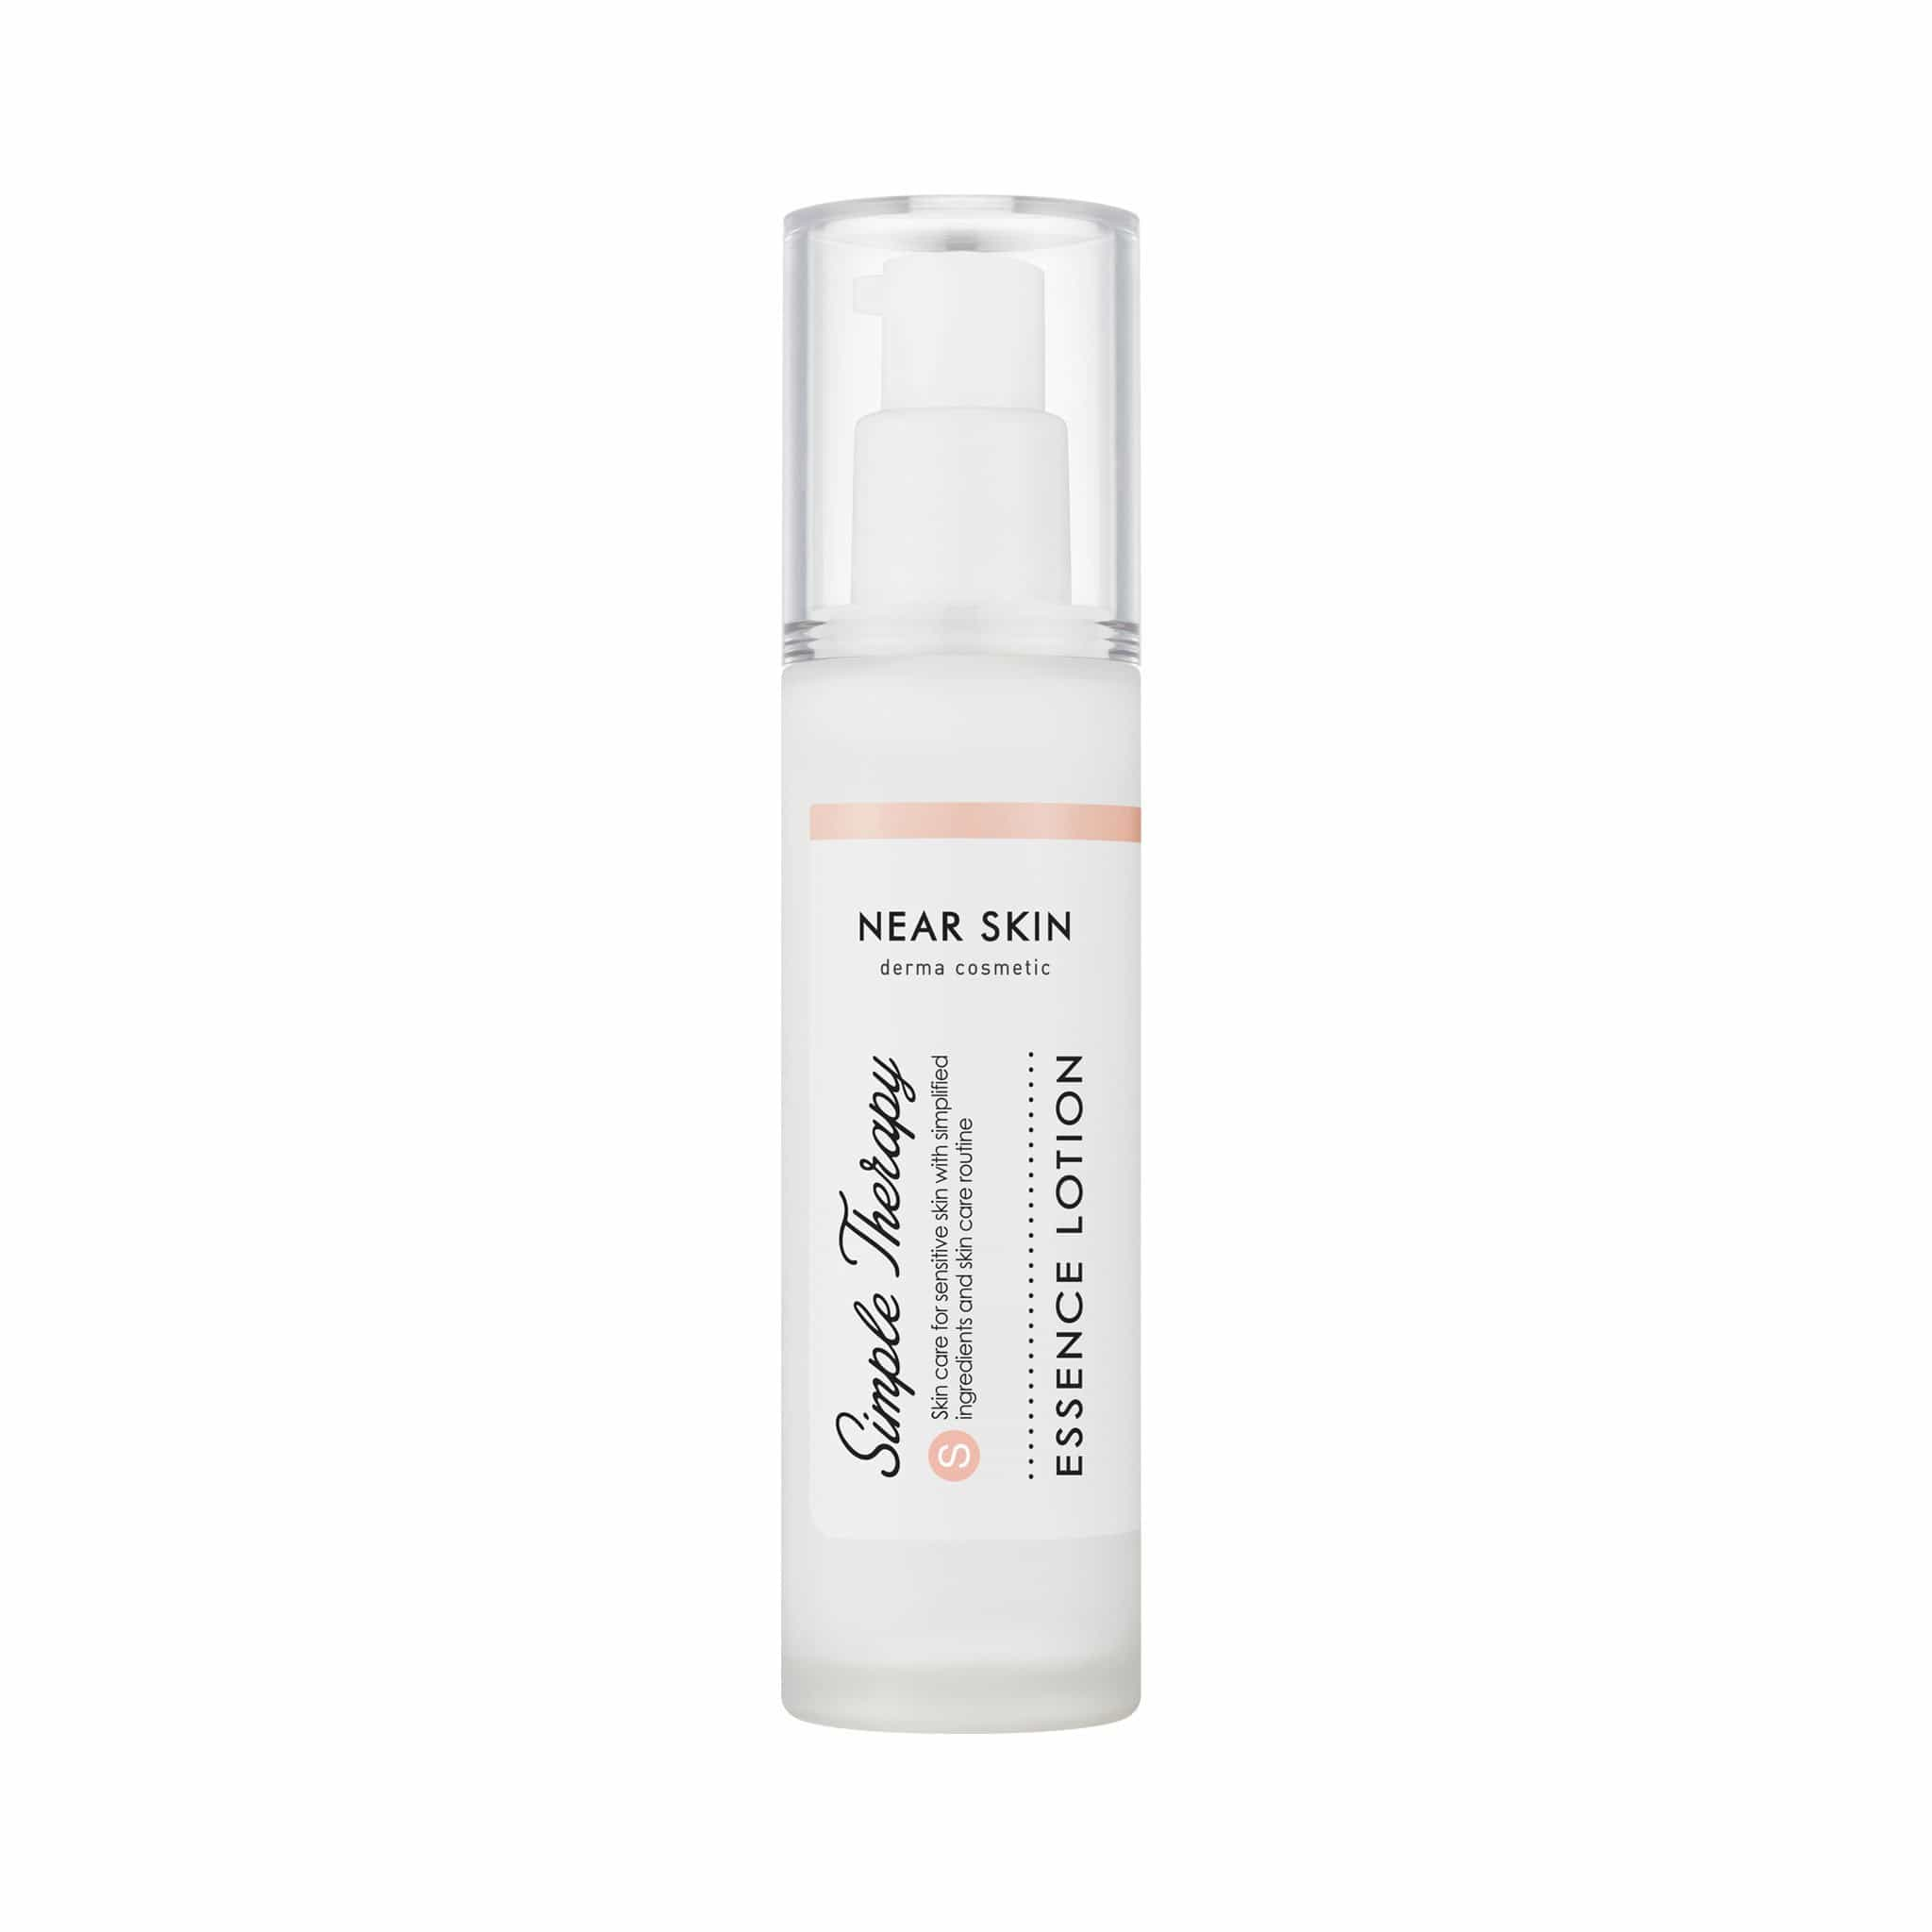 NEAR SKIN SIMPLE THERAPY MISTY TONER - MISSHA